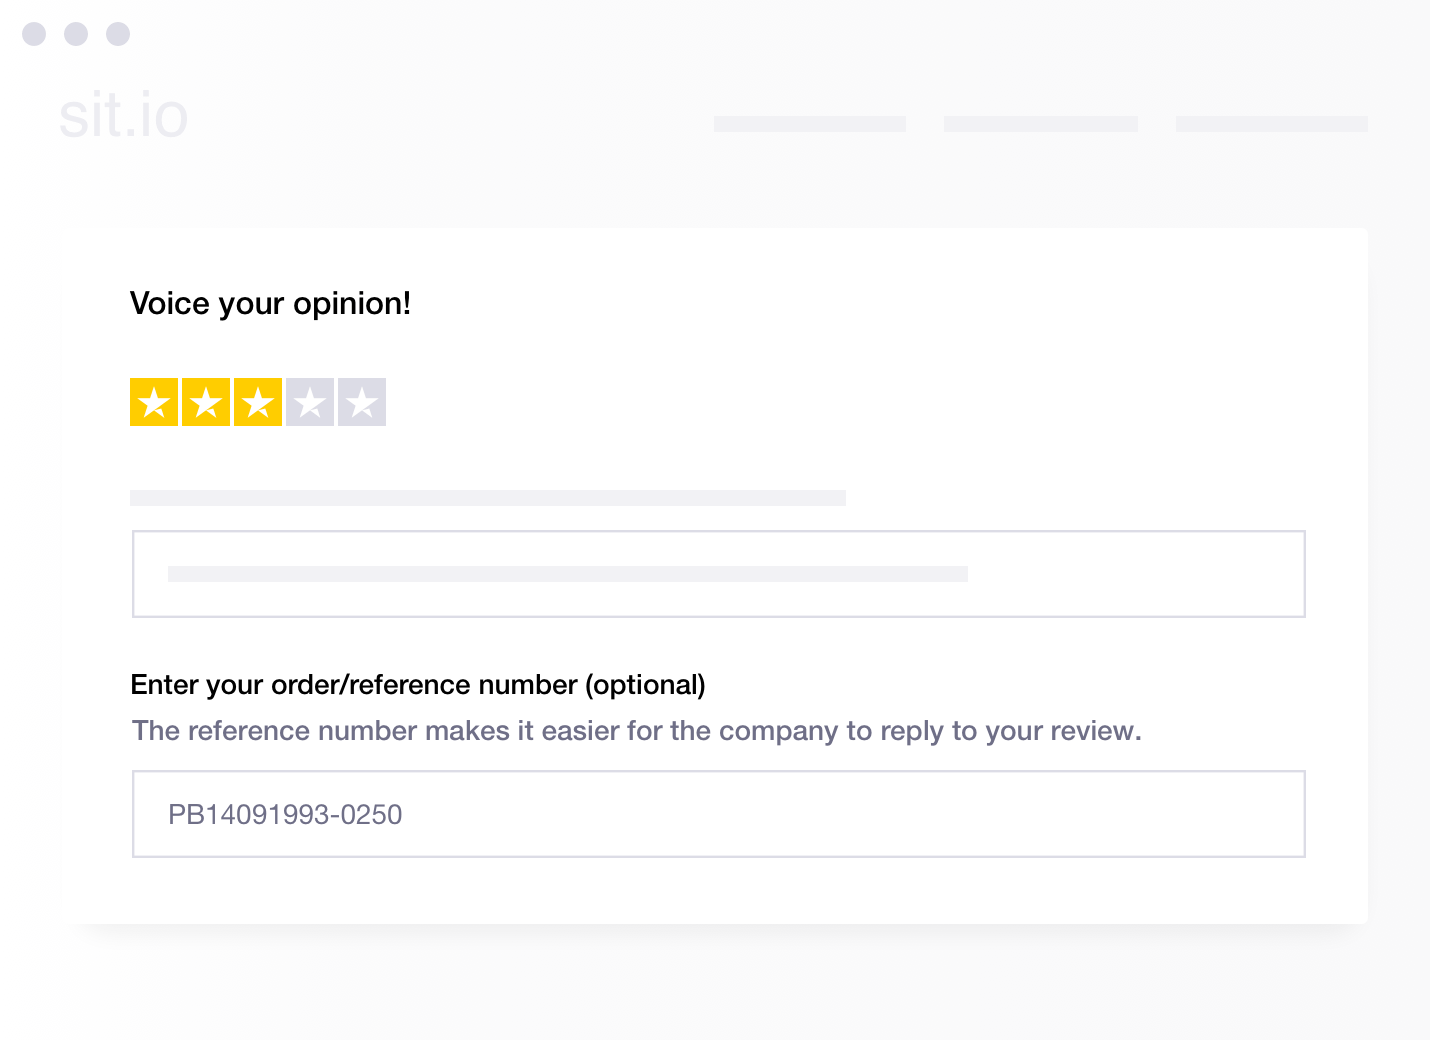 Illustration of Trustpilot's functionality to request an order or reference number from a reviewer